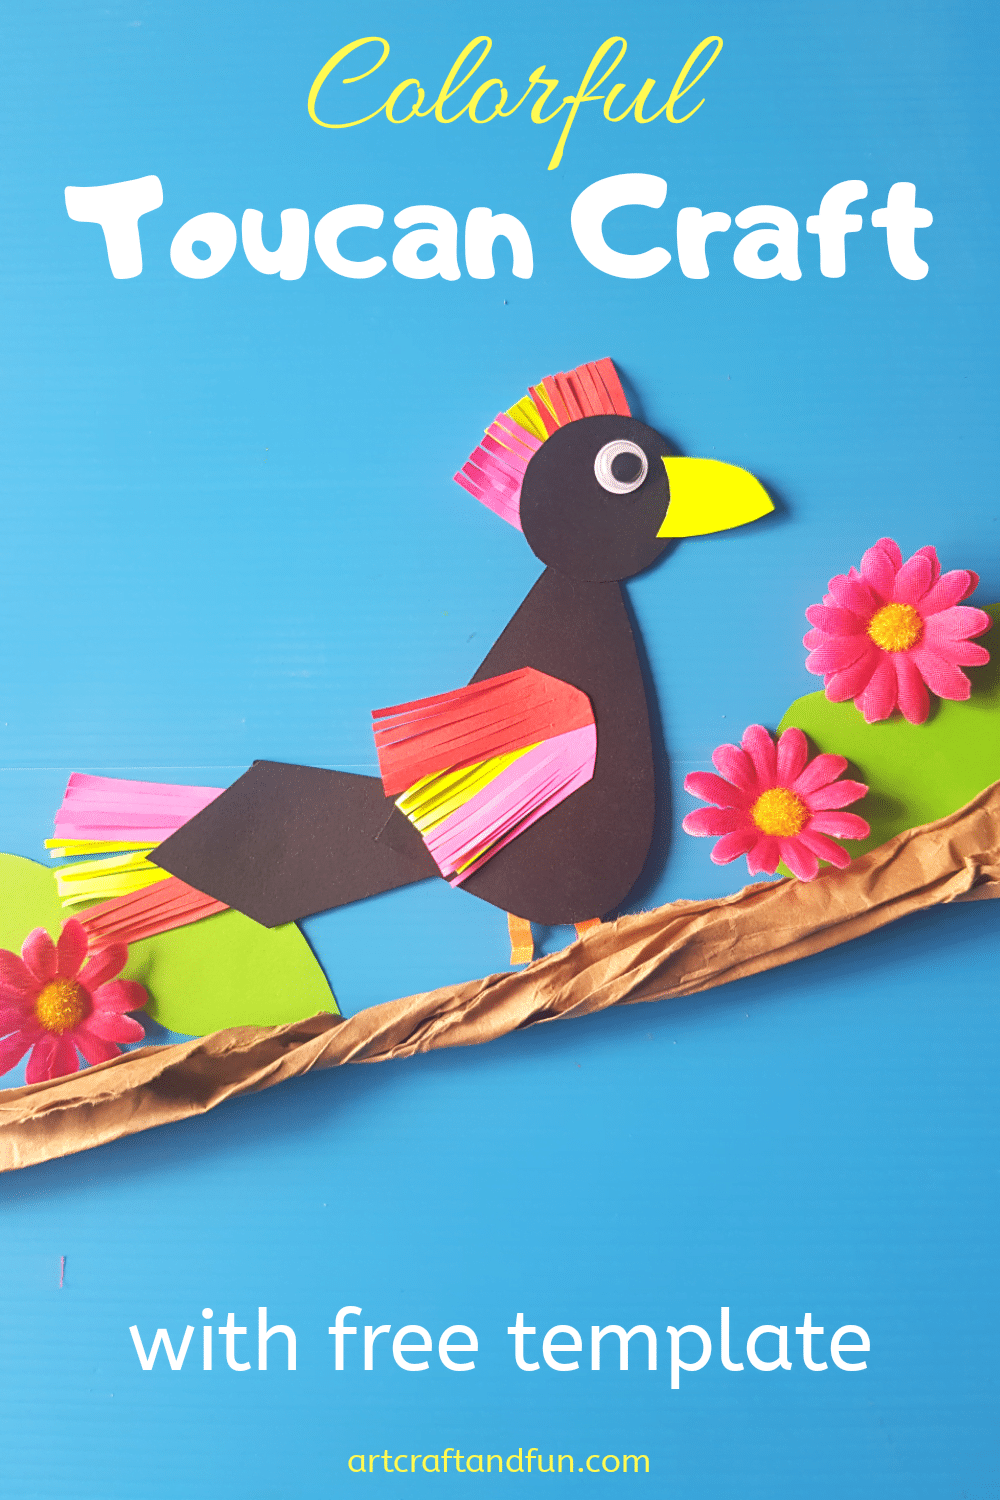 Colorful Toucan Craft With Free Template